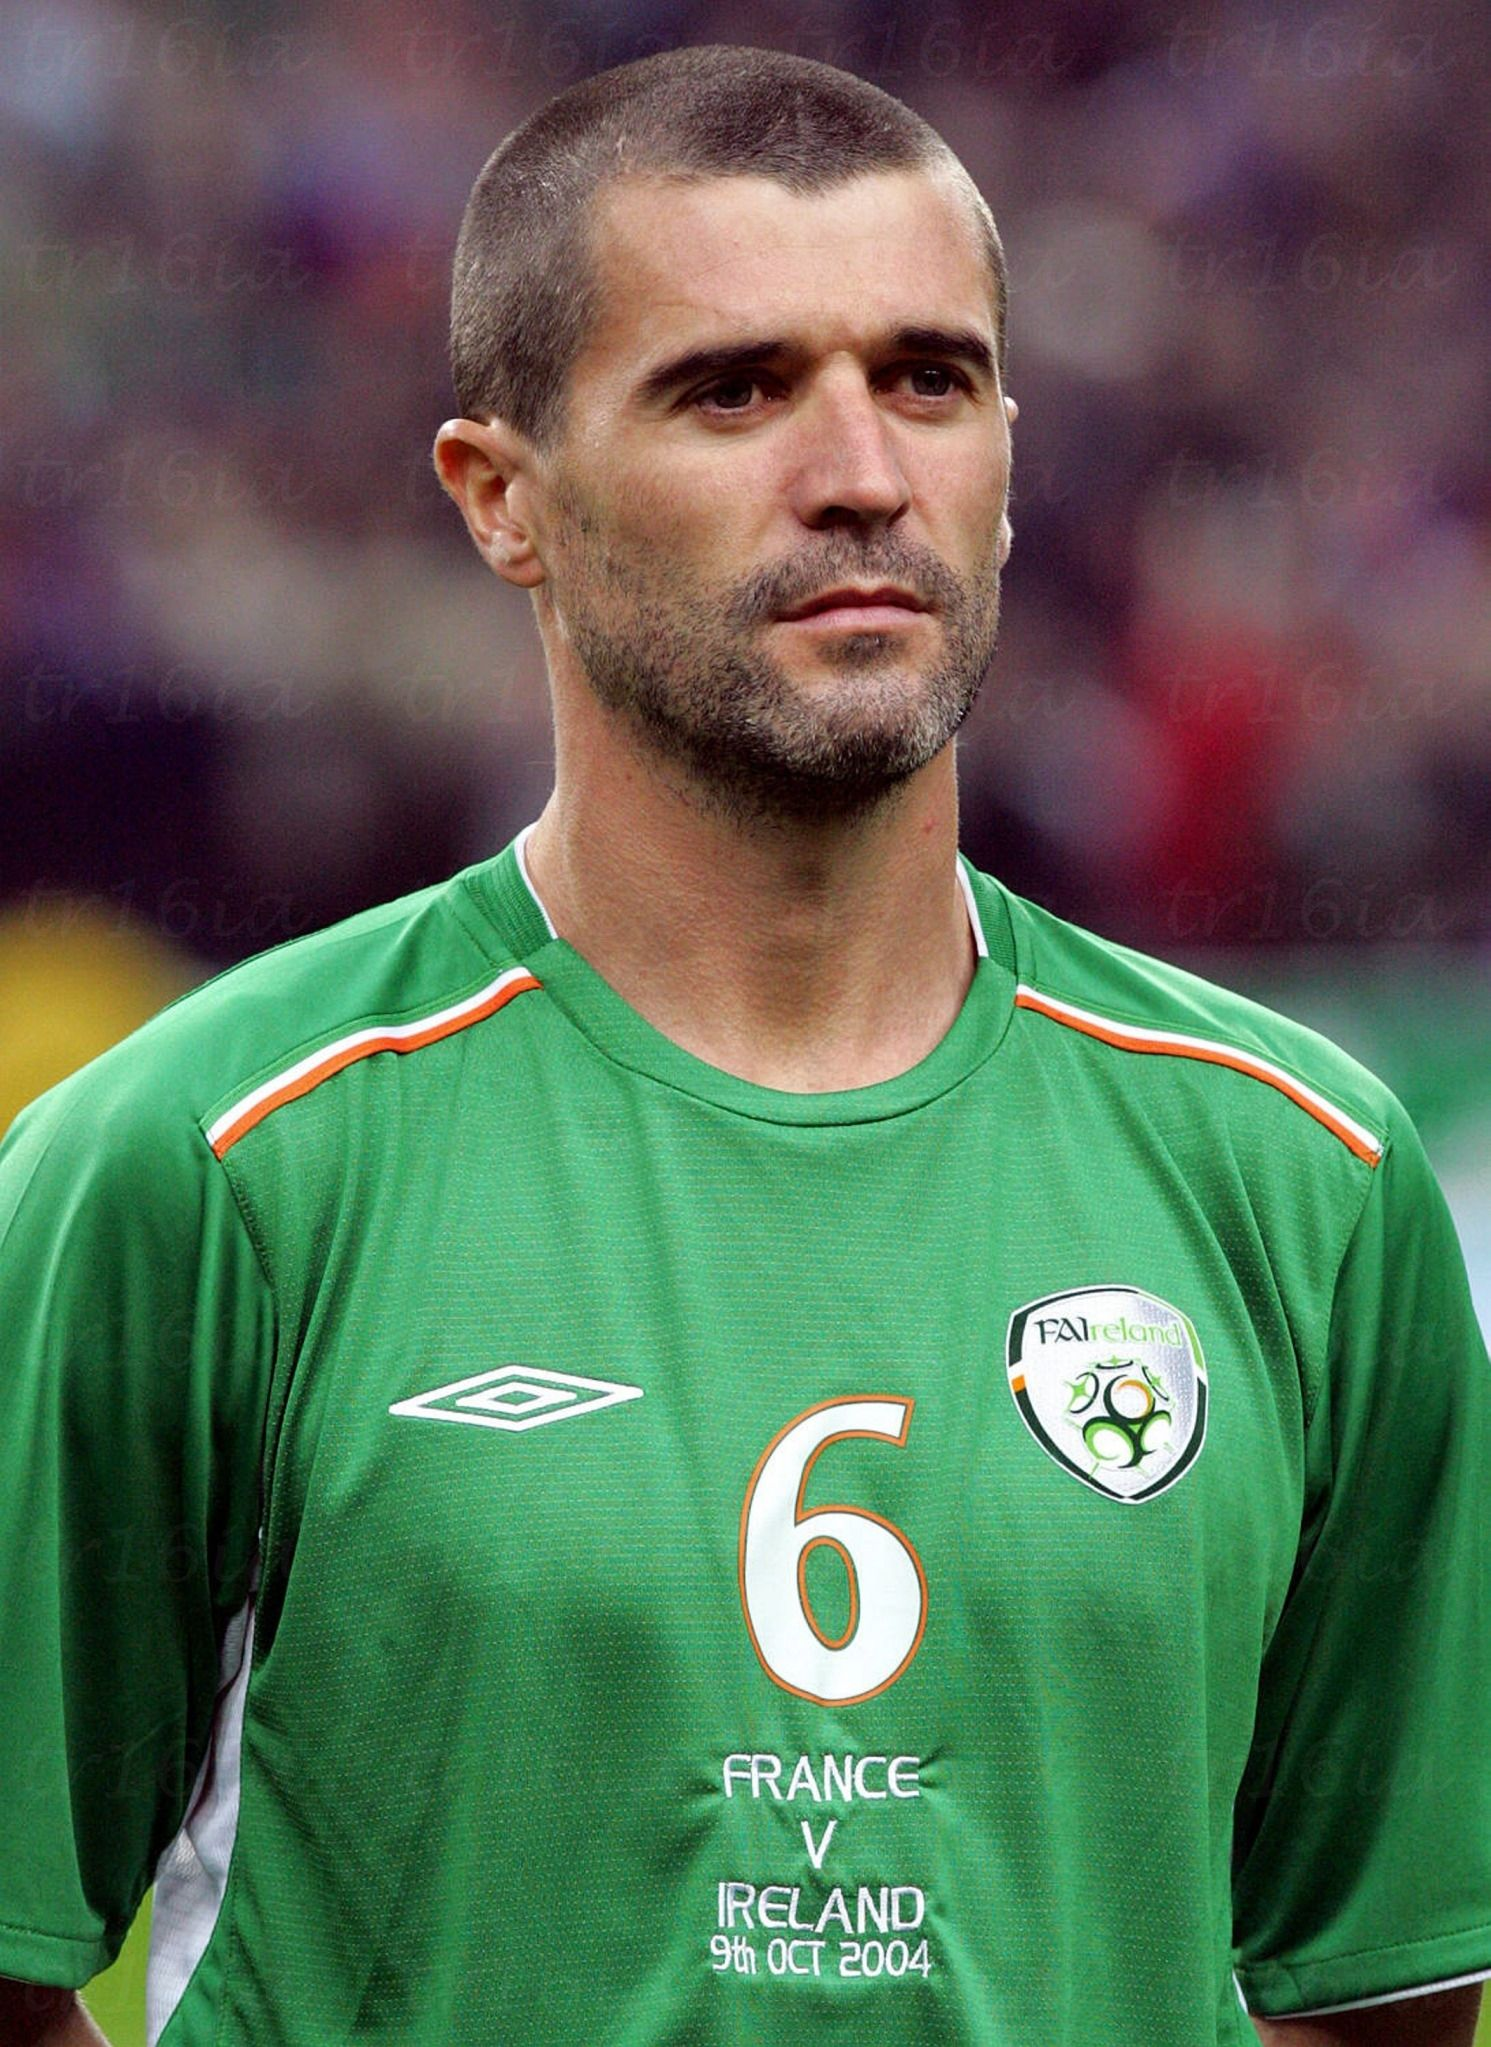 The latest inductees into the premier league hall of fame have been announced, with eric cantona and roy keane joining original inductees, alan. Irish midfielder Roy Keane prior to the World Cup 2006 ...